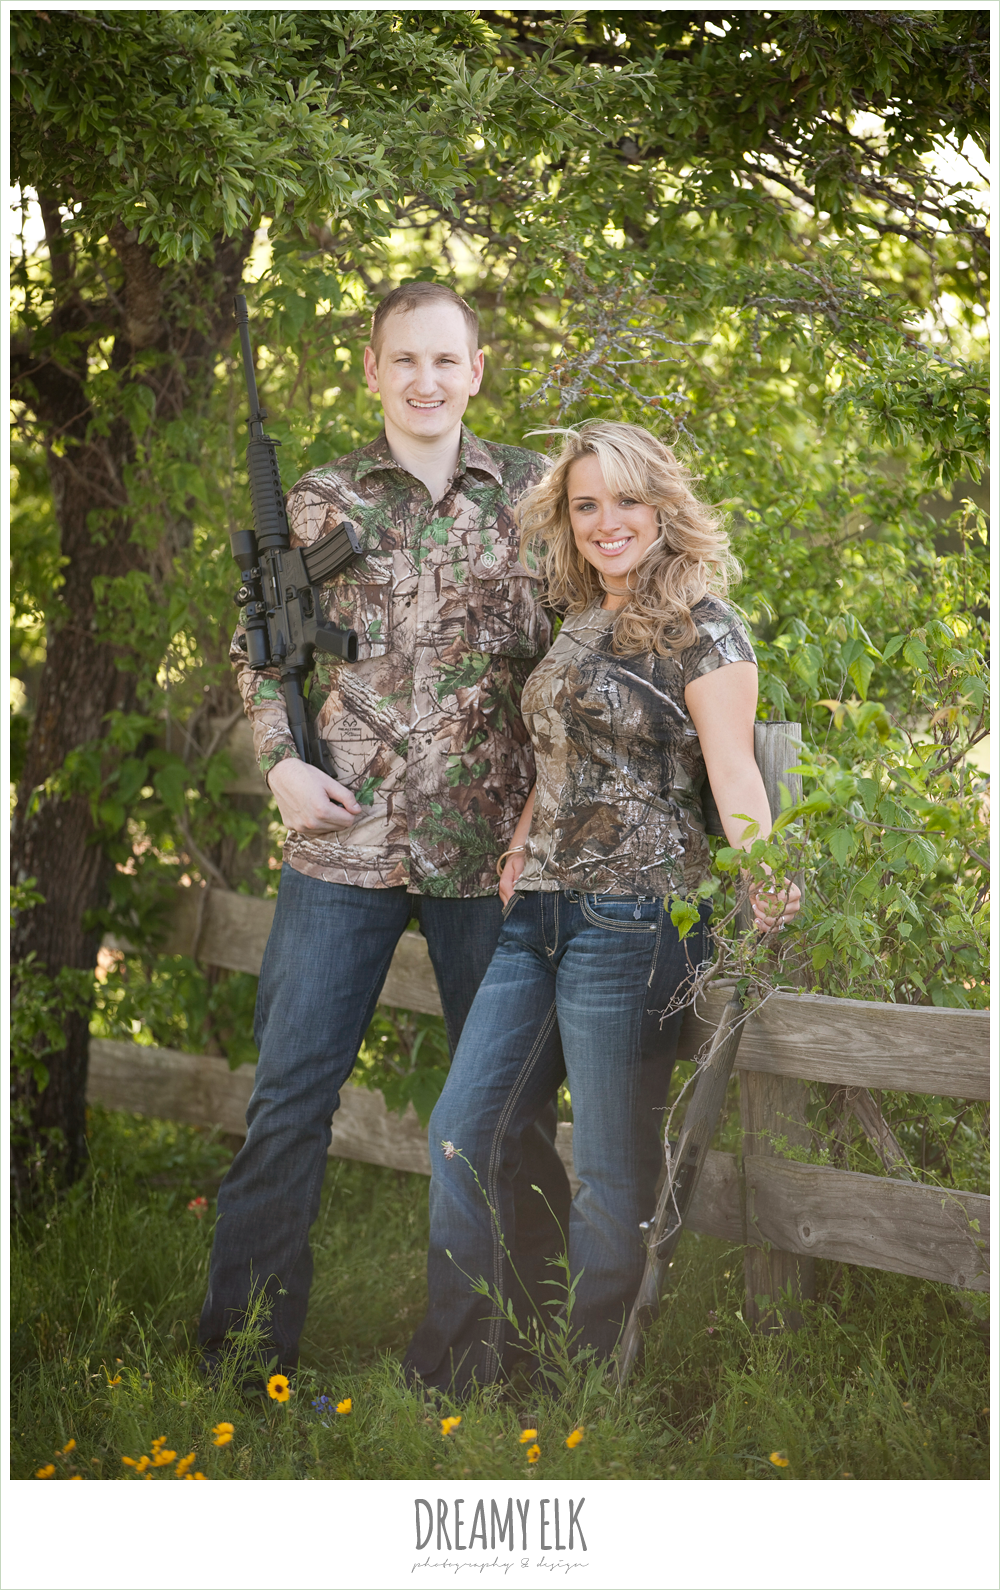 heather and clint, engagement photo in camo with guns, college station, texas